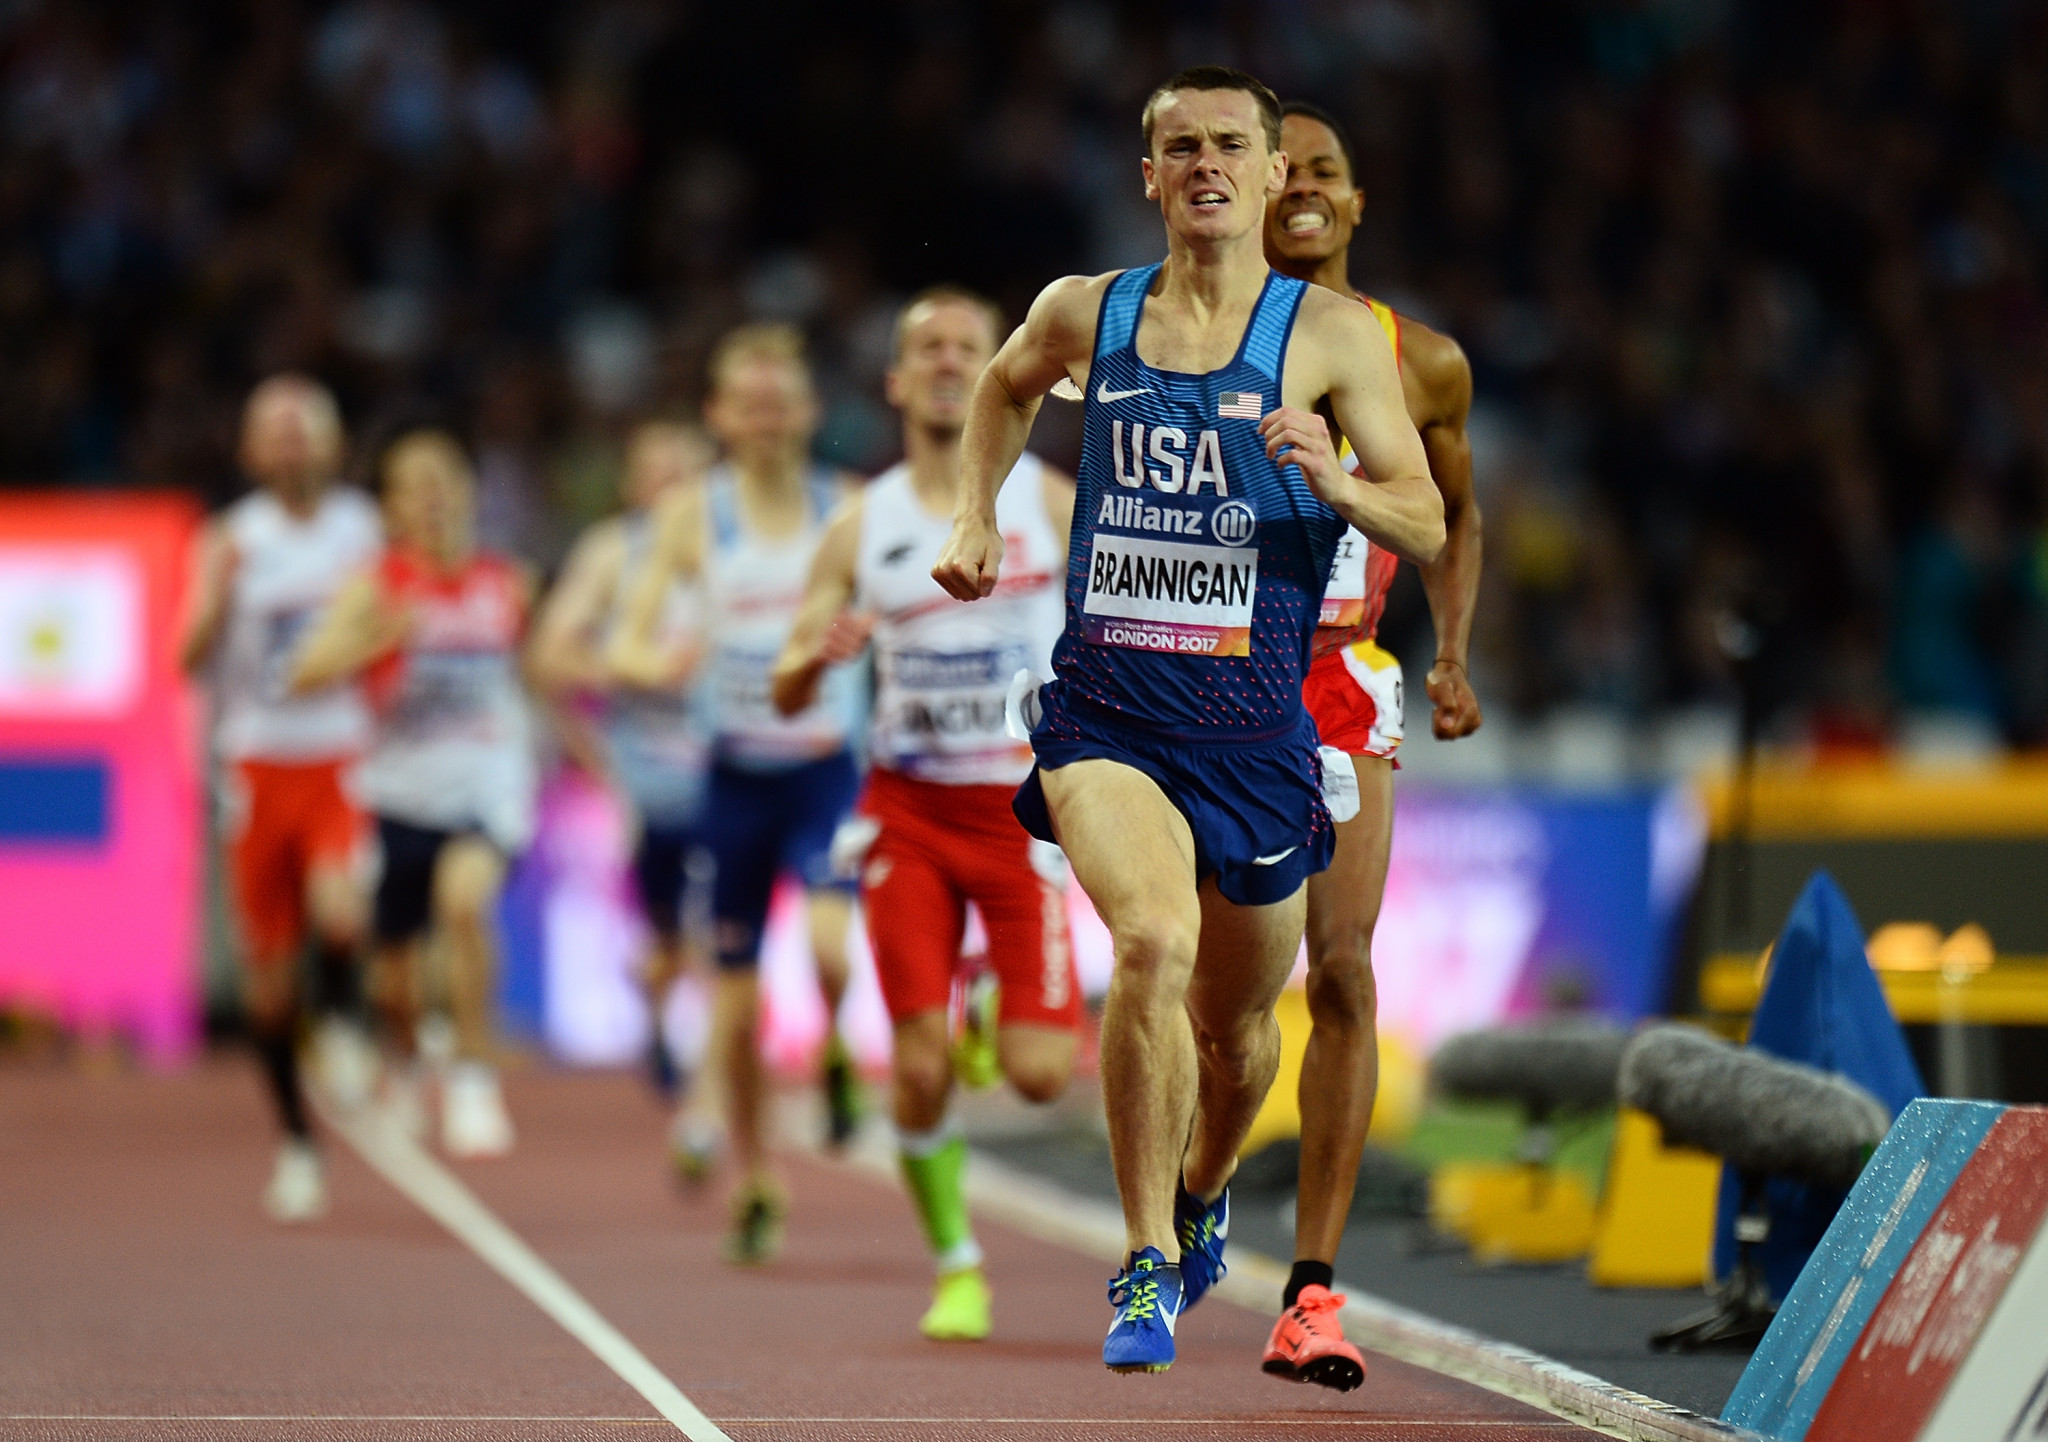 American Michael Brannigan is among the athletes set to compete in Beijing ©Getty Images